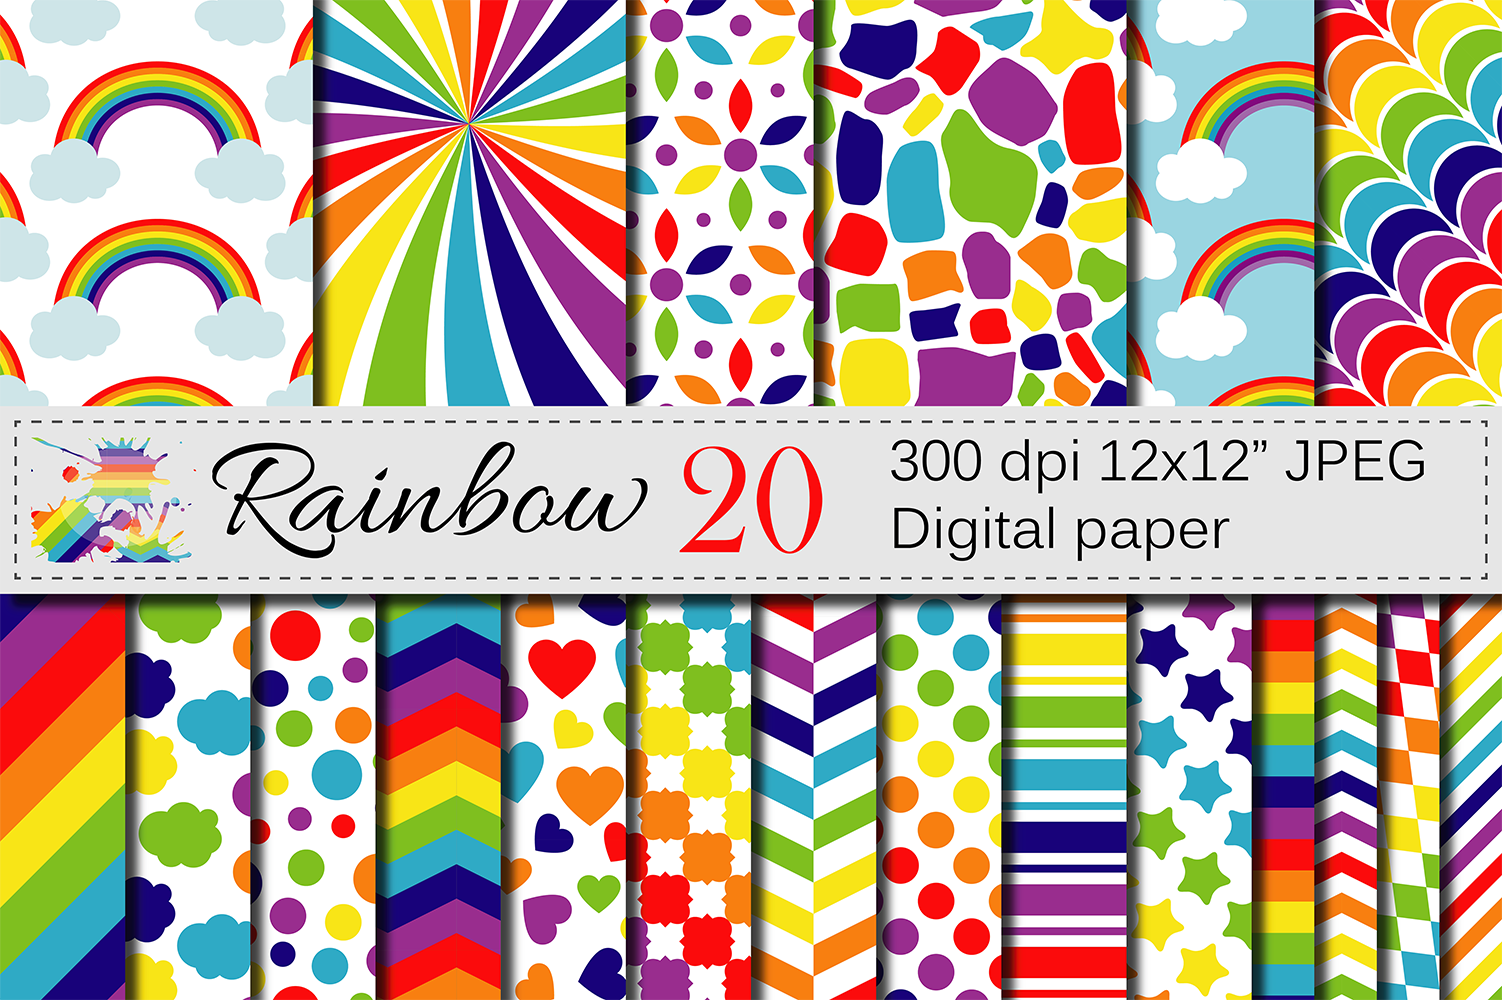 Rainbow Digital Paper Pack / Multicolored Scrapbooking Papers / Rainbow Backgrounds Graphic Backgrounds By VR Digital Design